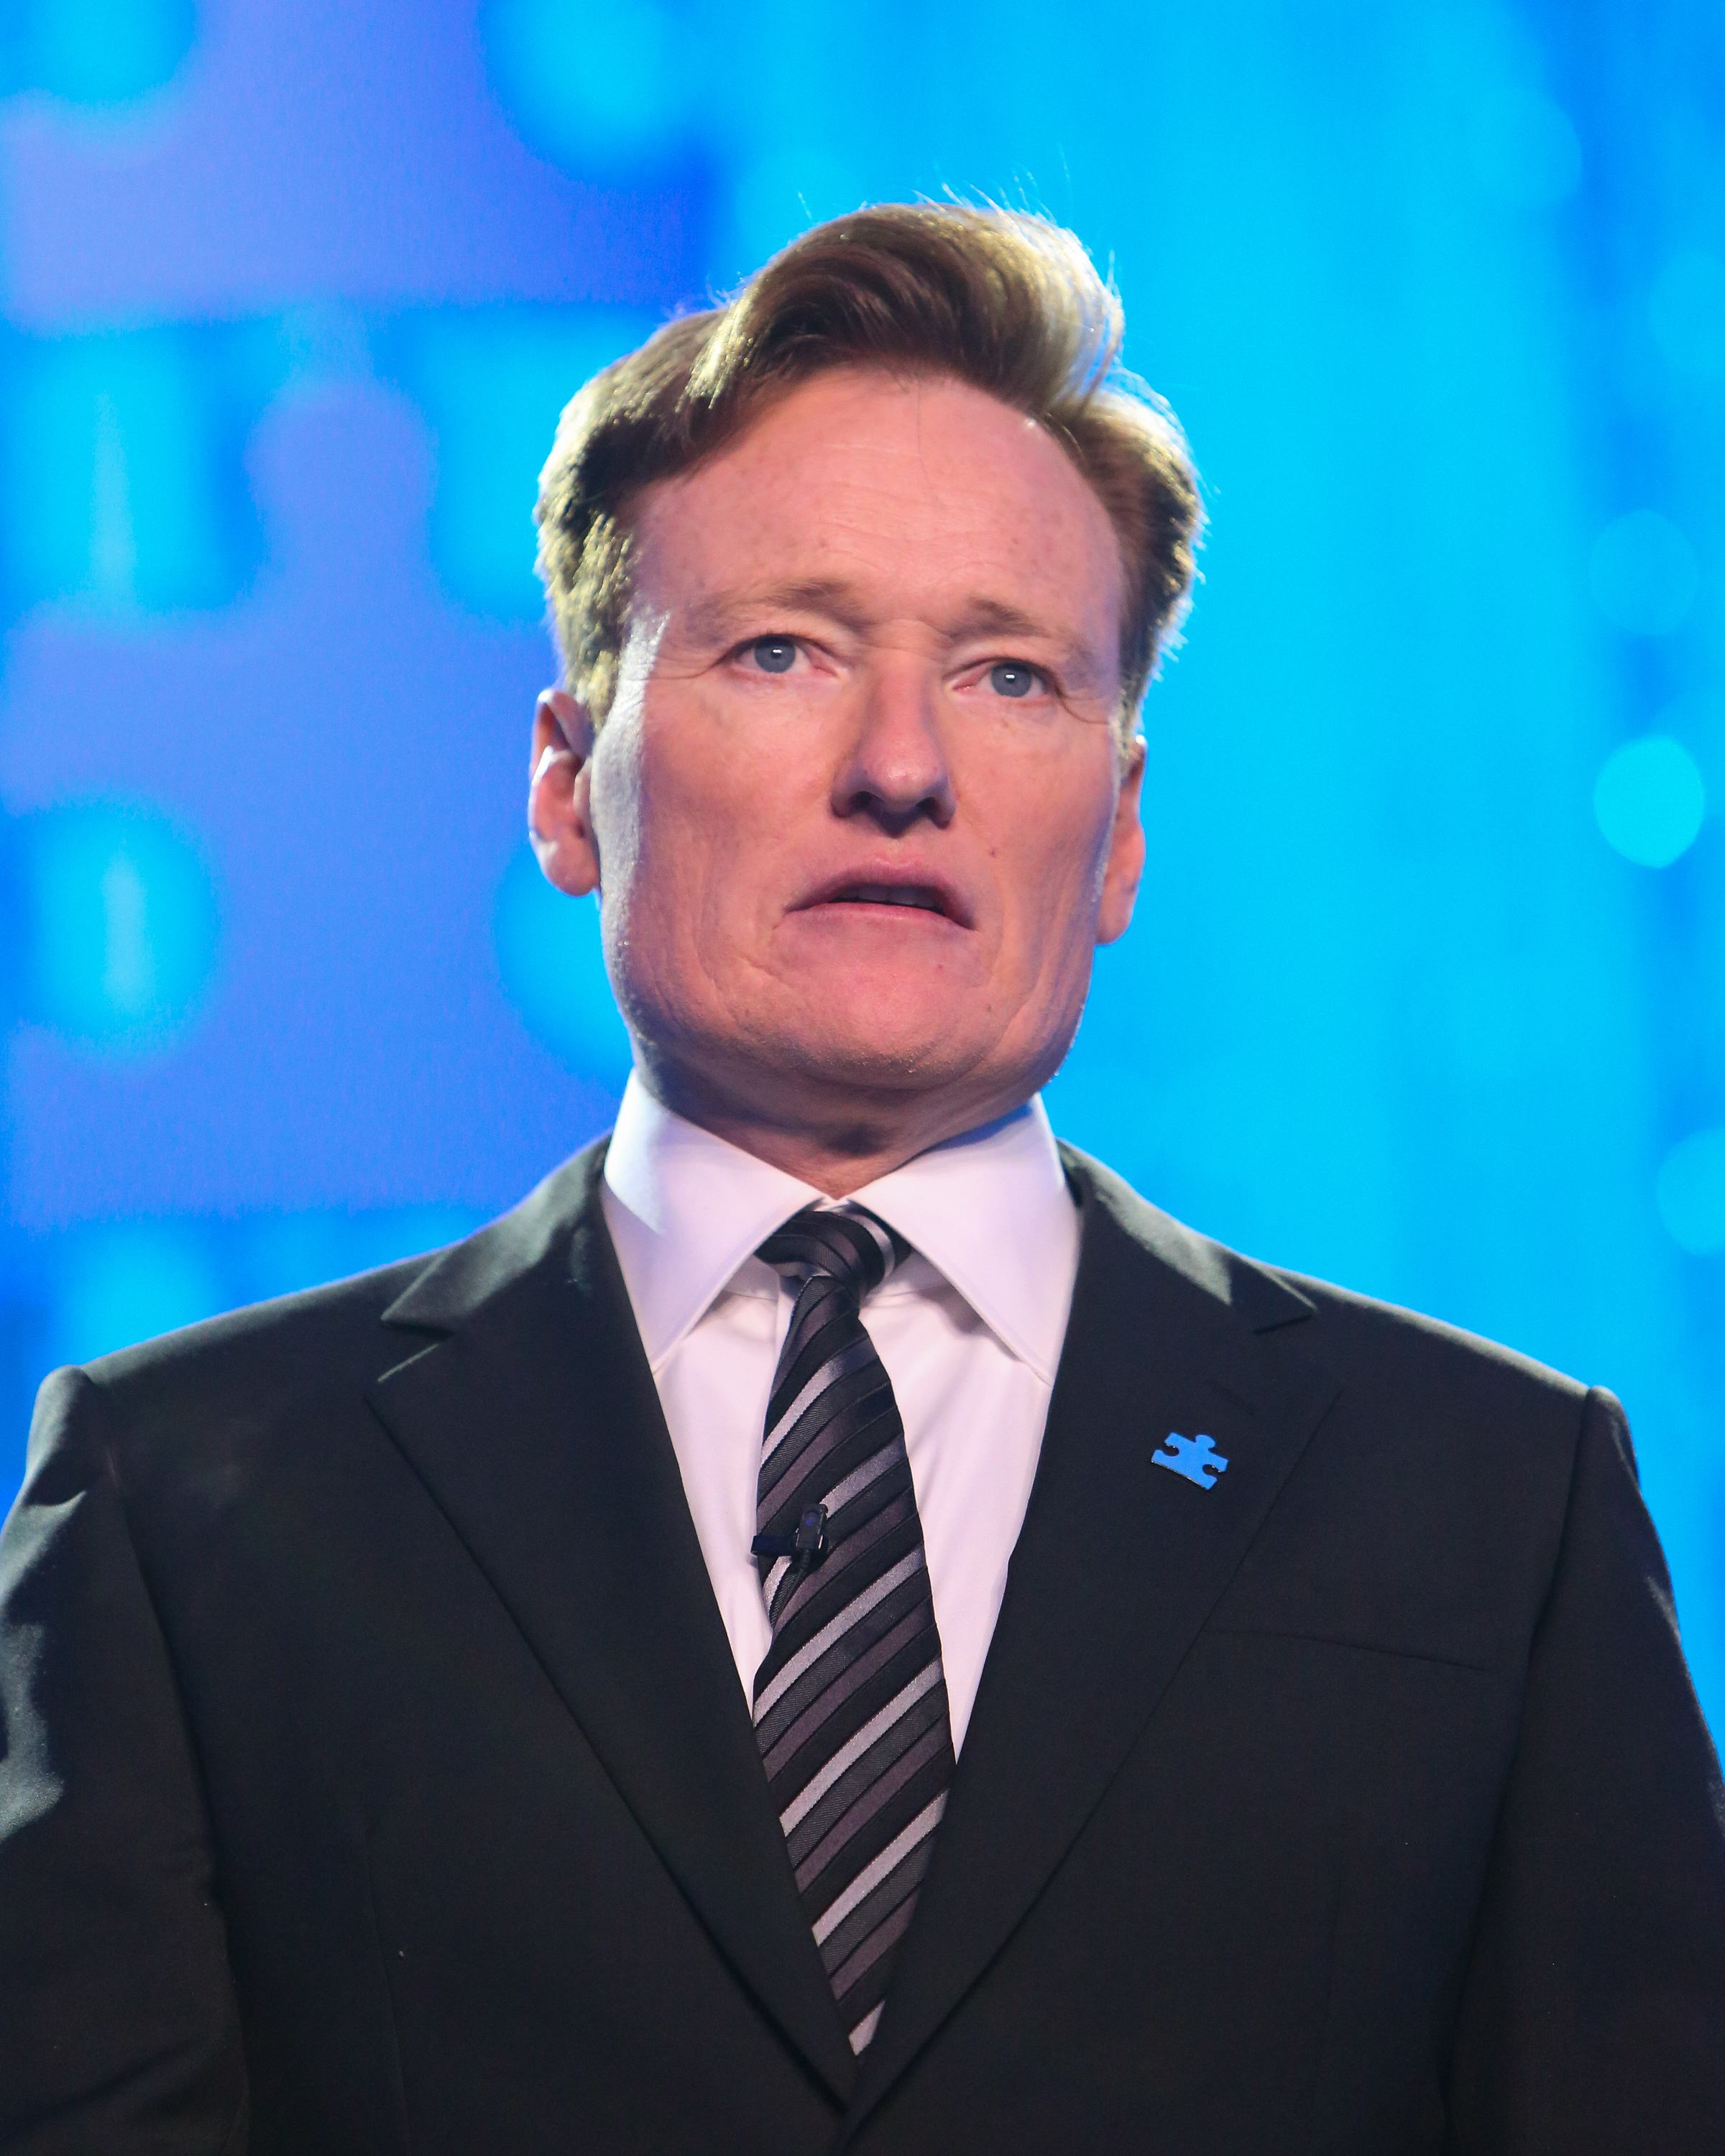 Conan O'Brien at the Autism Speaks To Los Angeles Celebrity Chef Gala in Santa Monica, Calif. on Oct. 8, 2015.